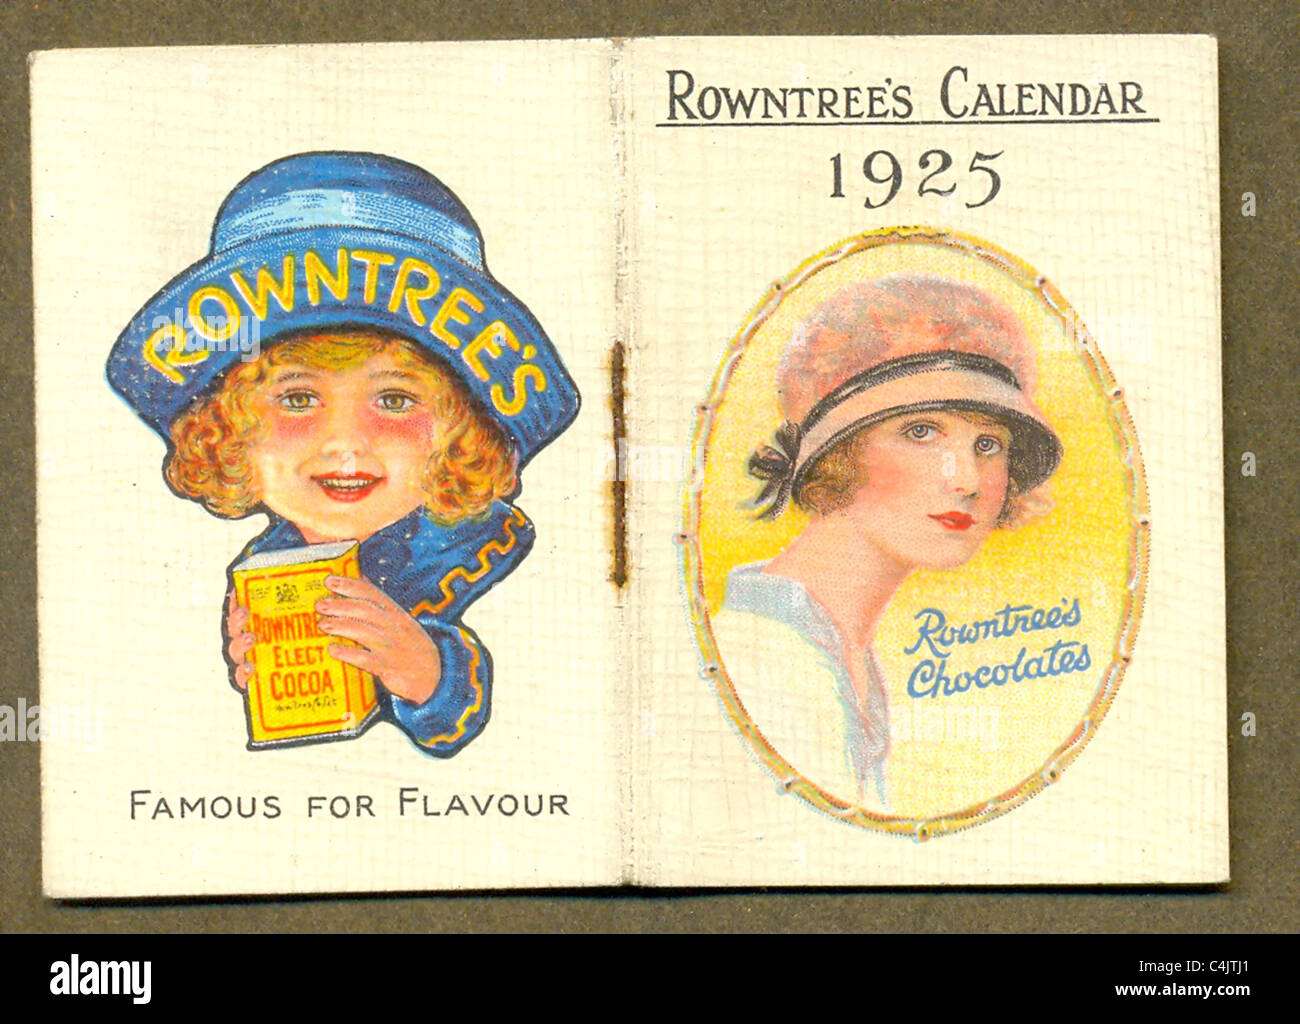 Advertising purse calendar given away by Rowntree's - Stock Image